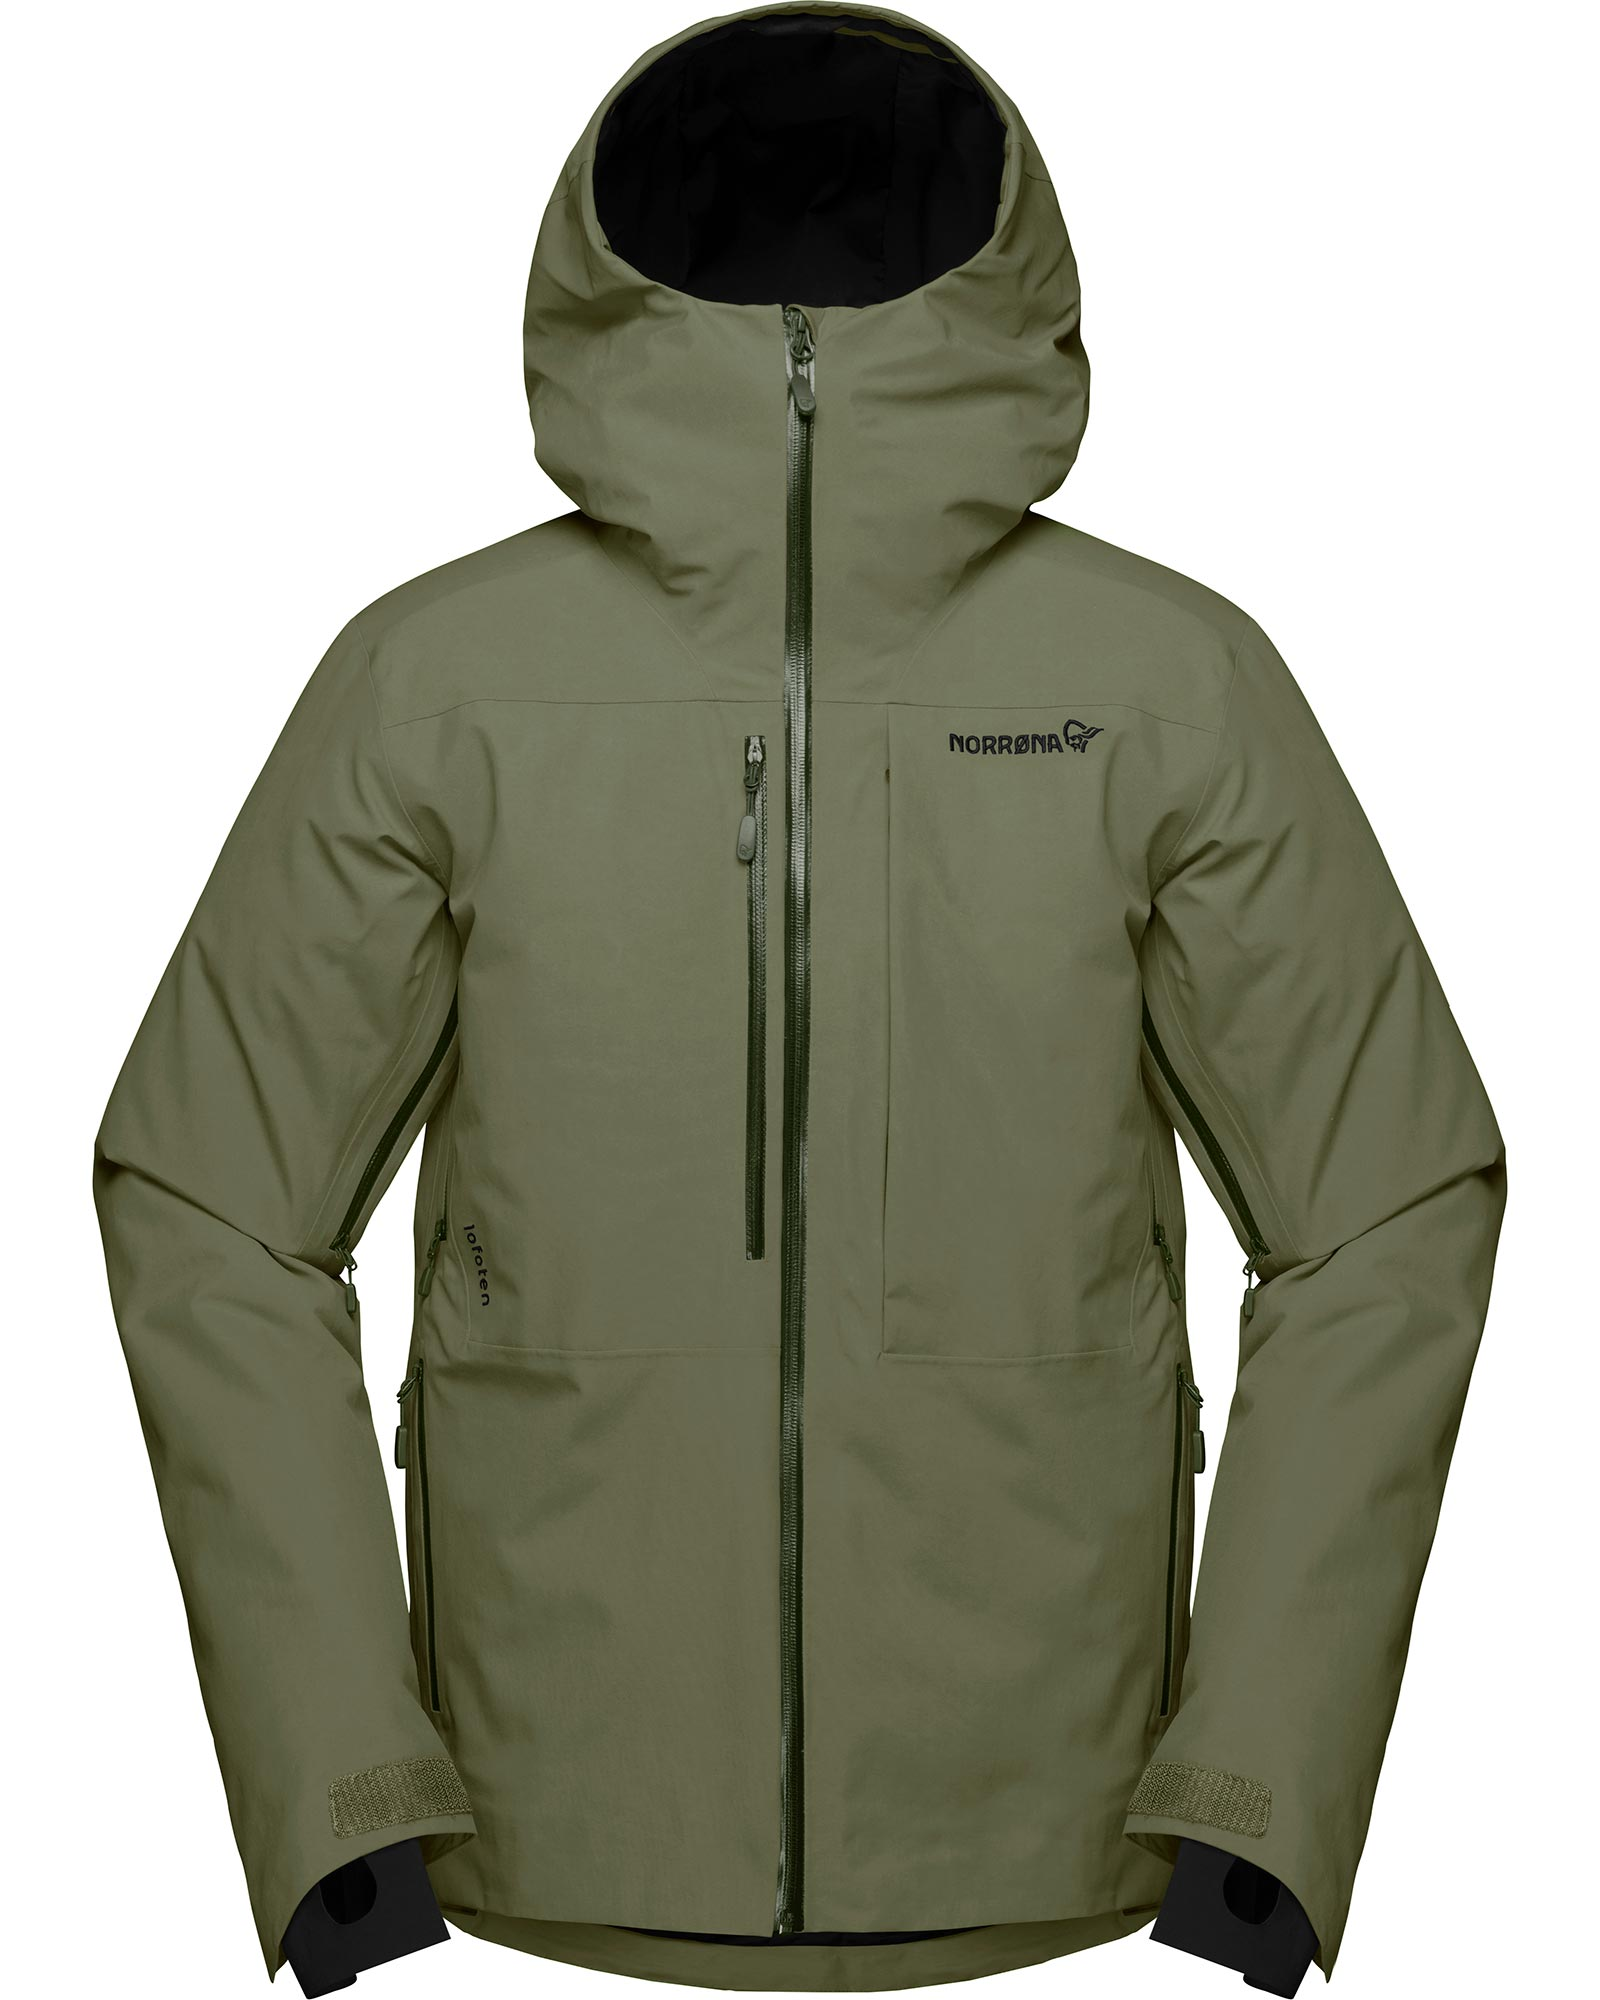 Norrona Men's Lofoten GORE-TEX Insulated Ski Jacket 0